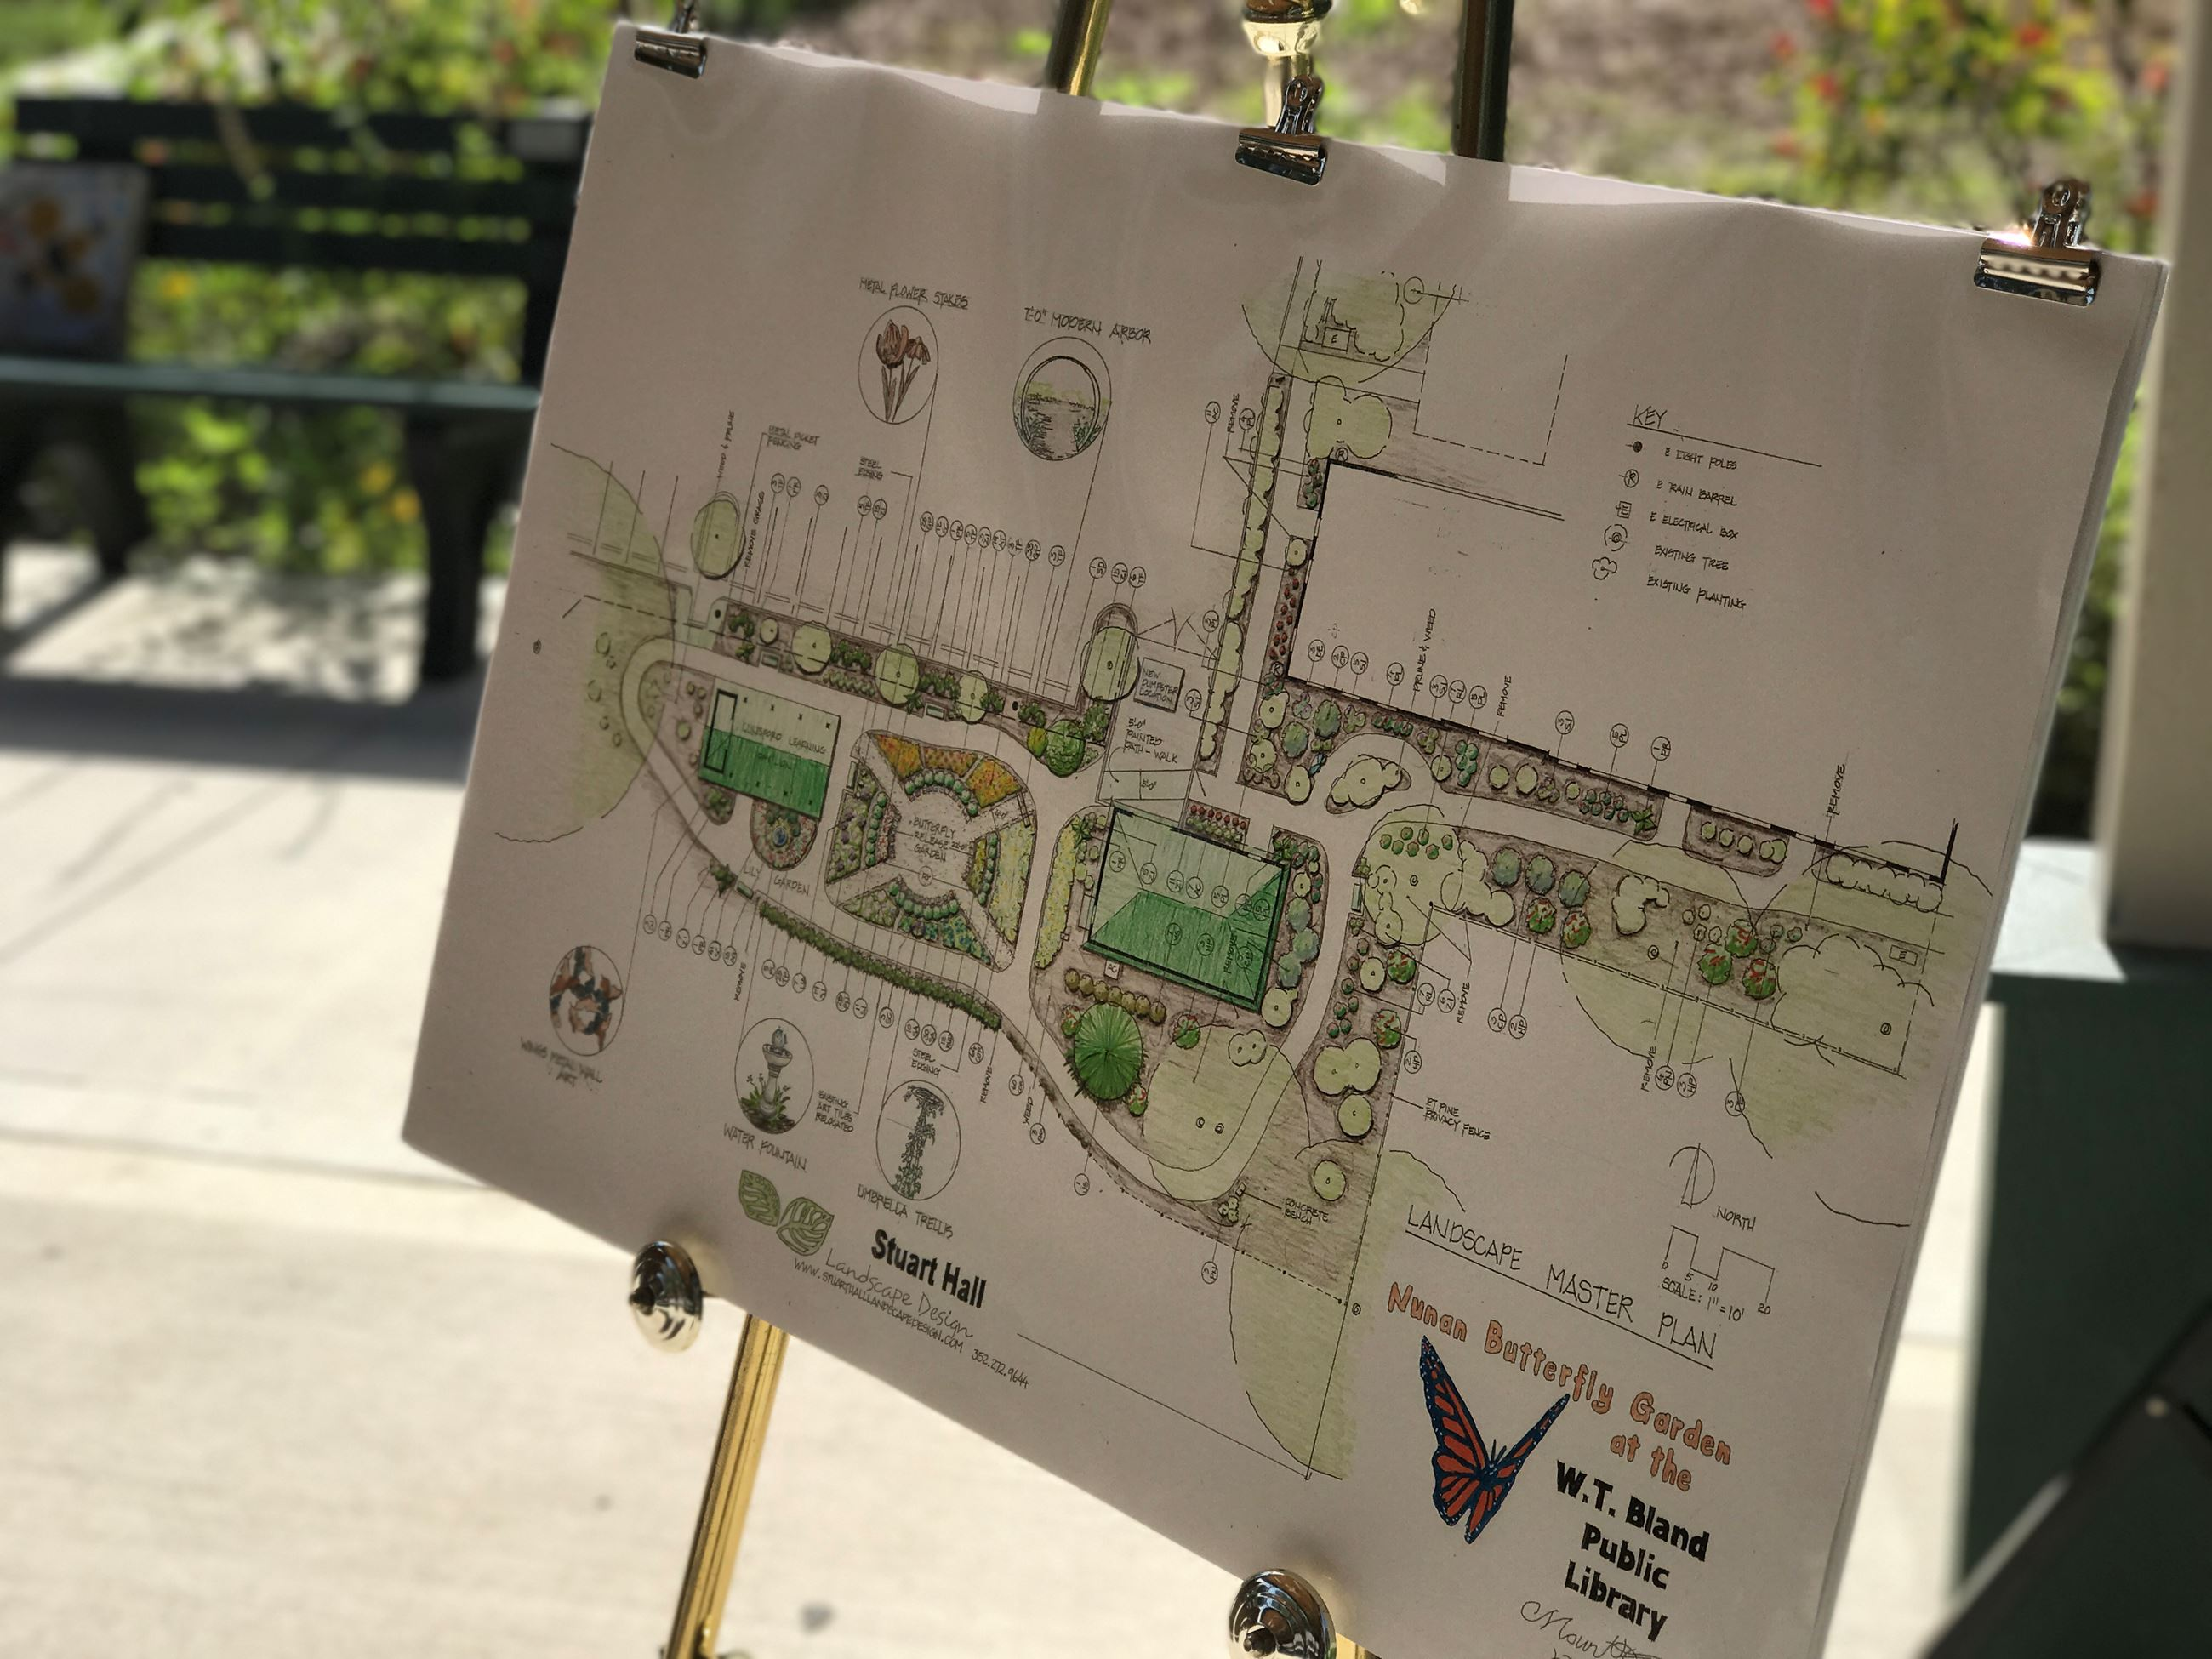 nunan butterfly garden blueprint on display at ribbon cutting